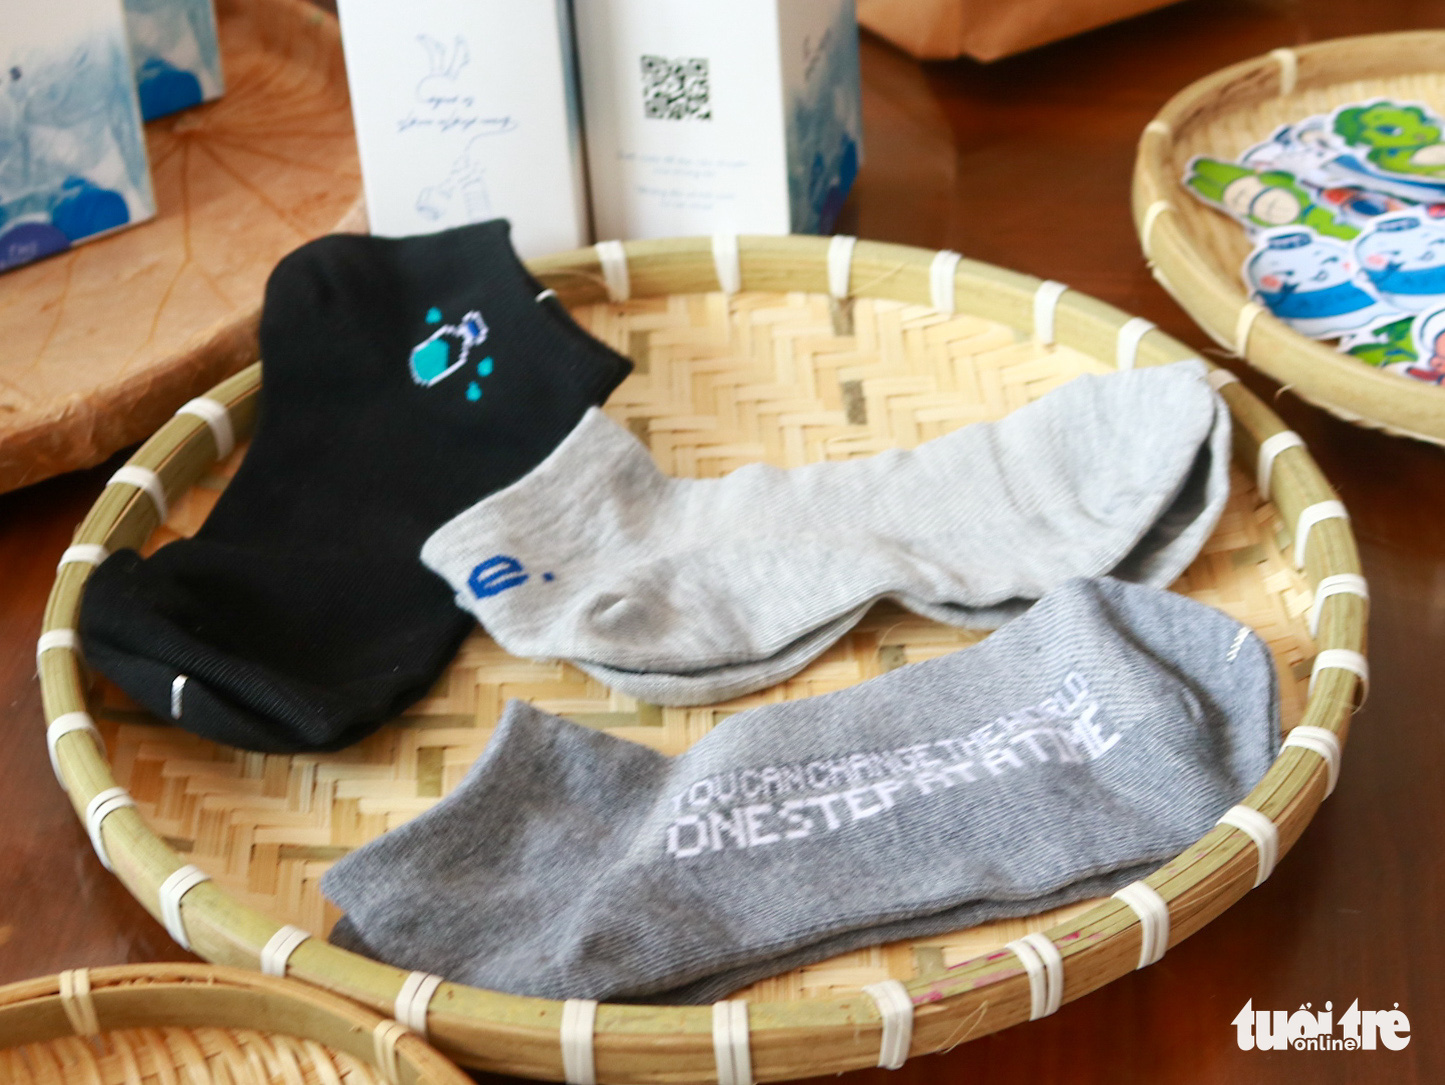 Socks made from recycled plastic bottles are presented at the event organized by Re.socks in Phu Nhuan District, Ho Chi Minh City, March 27, 2021. Photo: Huu Huong / Tuoi Tre